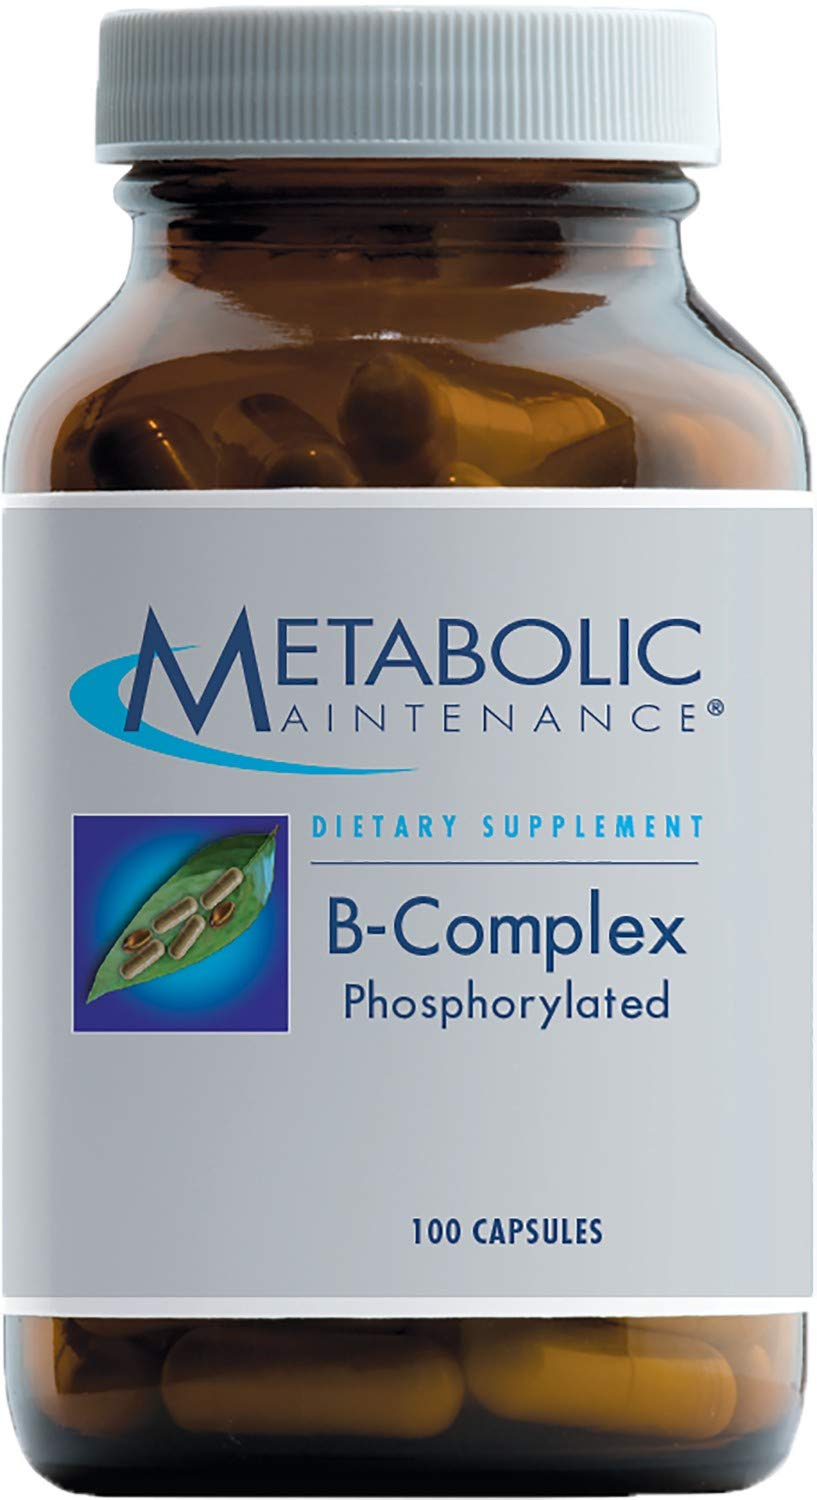 Metabolic Maintenance B-Complex Phosphorylated – Active B Vitamins with Methyl B12, B6 as P-5-P Methylfolate 5-MTHF 100 Capsules